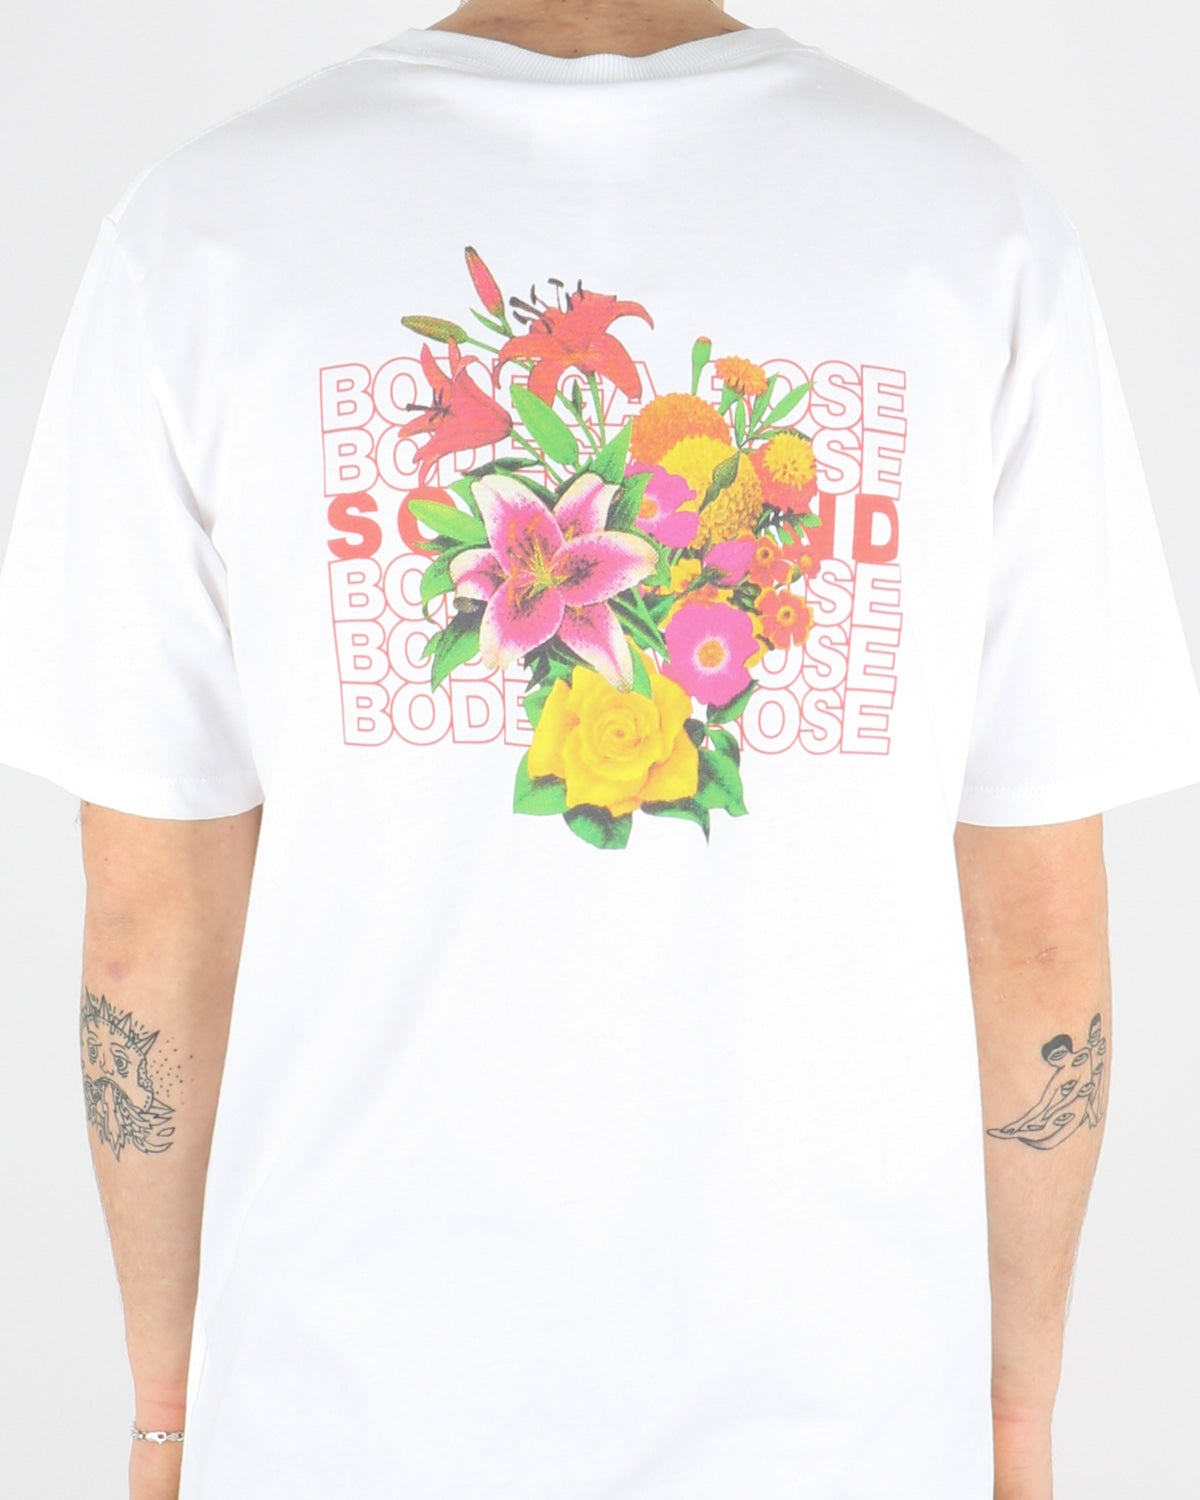 soulland_rossel t-shirt_white_3_3